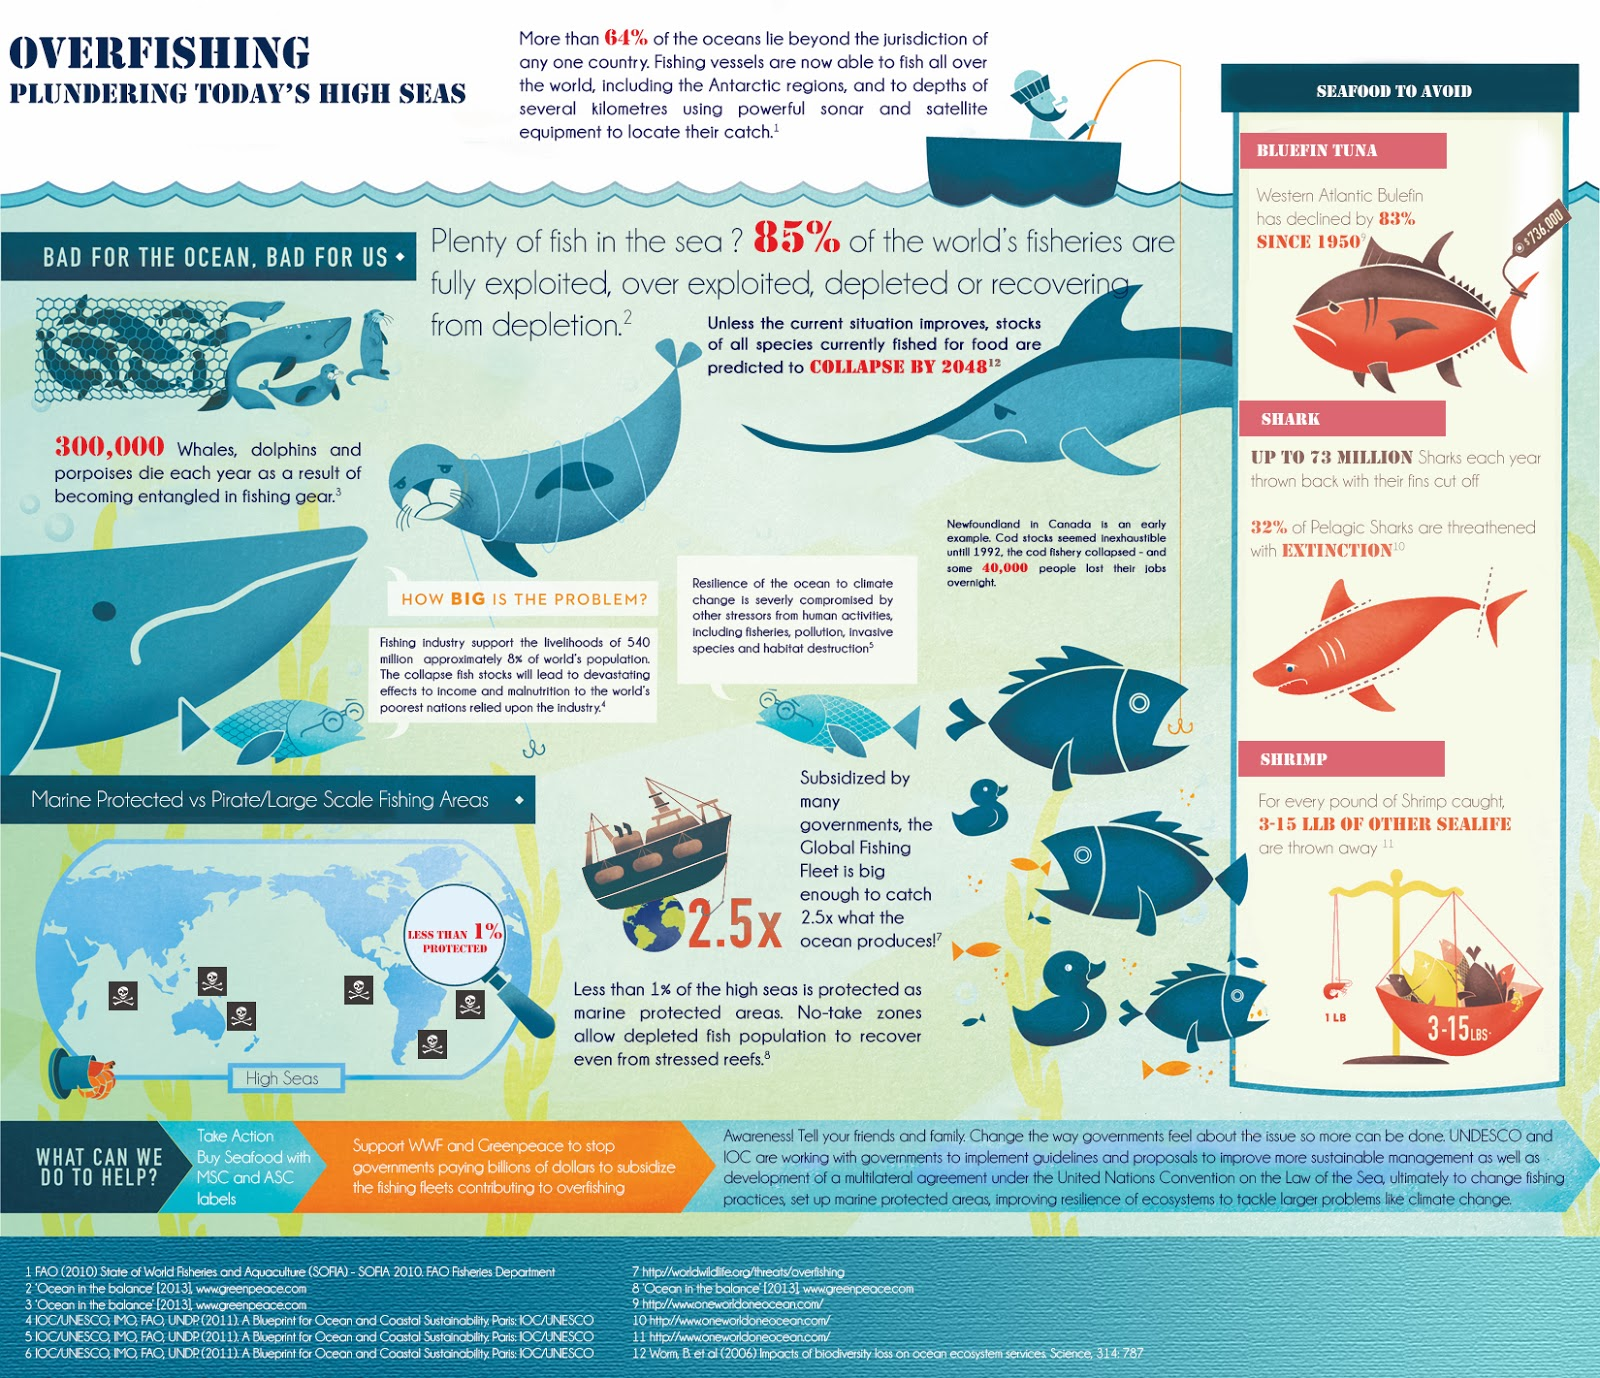 overfishing fish and n d web Overfishing: fish and nd web topics: fish overfishing occurs when fish and other marine species are caught at a faster rate then they can reproduce there is.